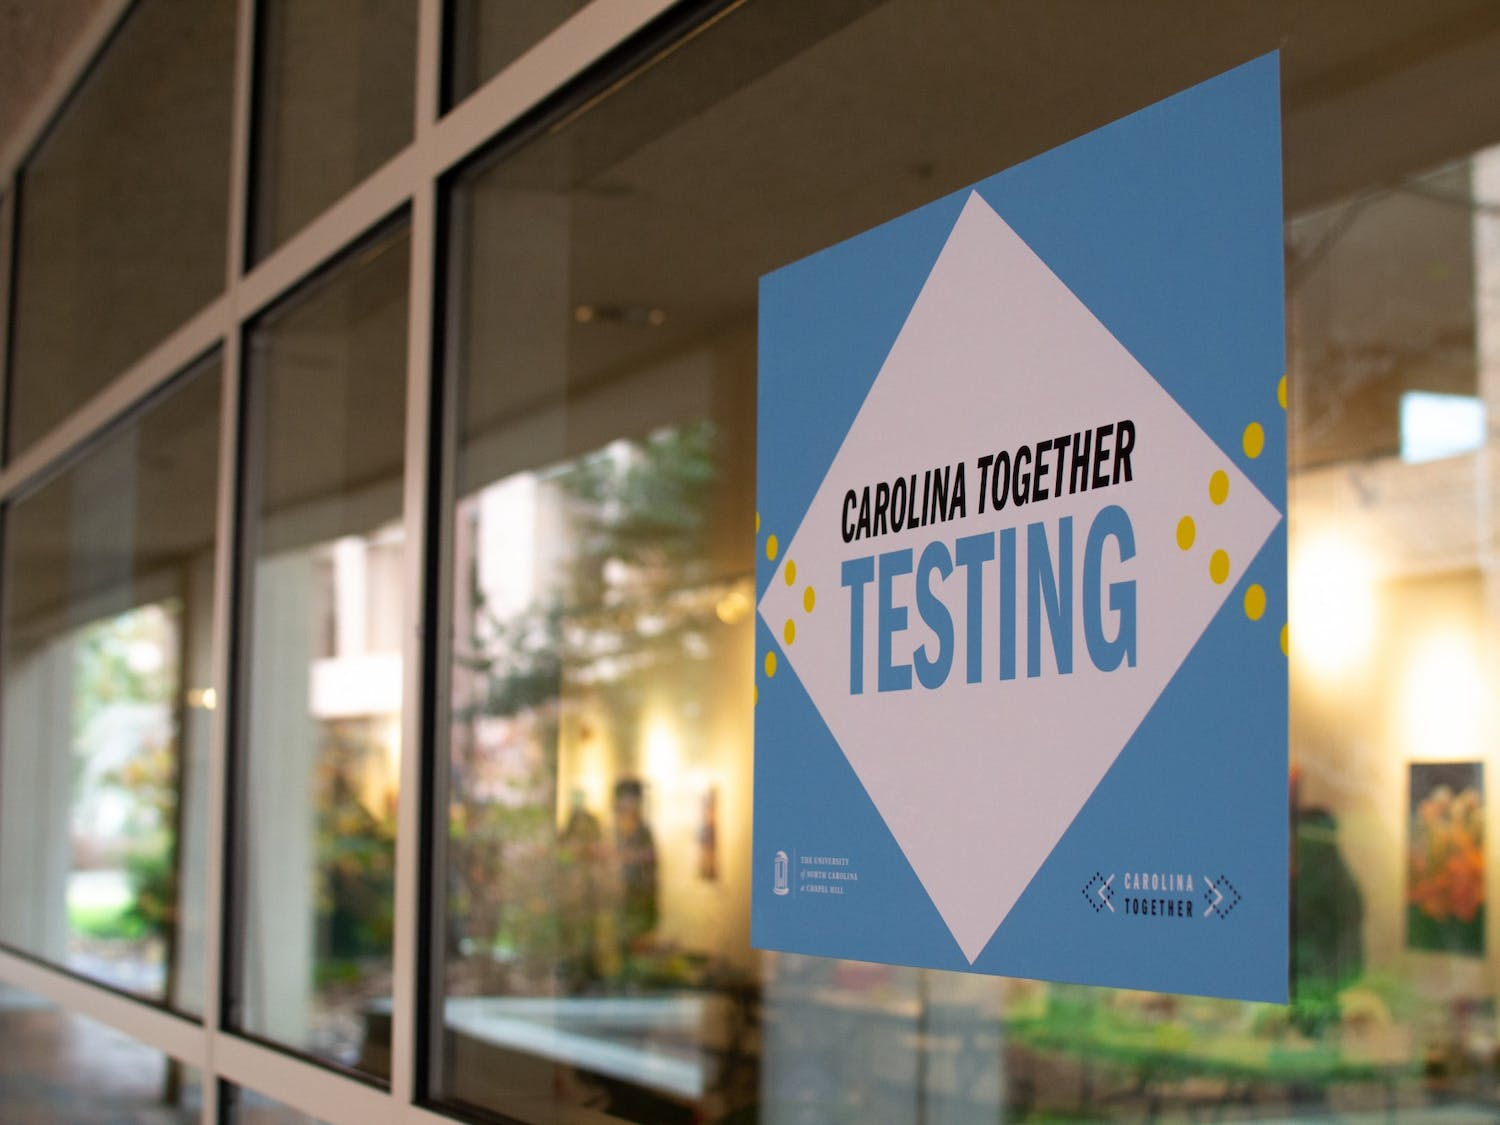 Signage for students receiving their re-entry COVID test at the Frank Porter Graham Student Union is displayed in the gallery space on January 16, 2021.